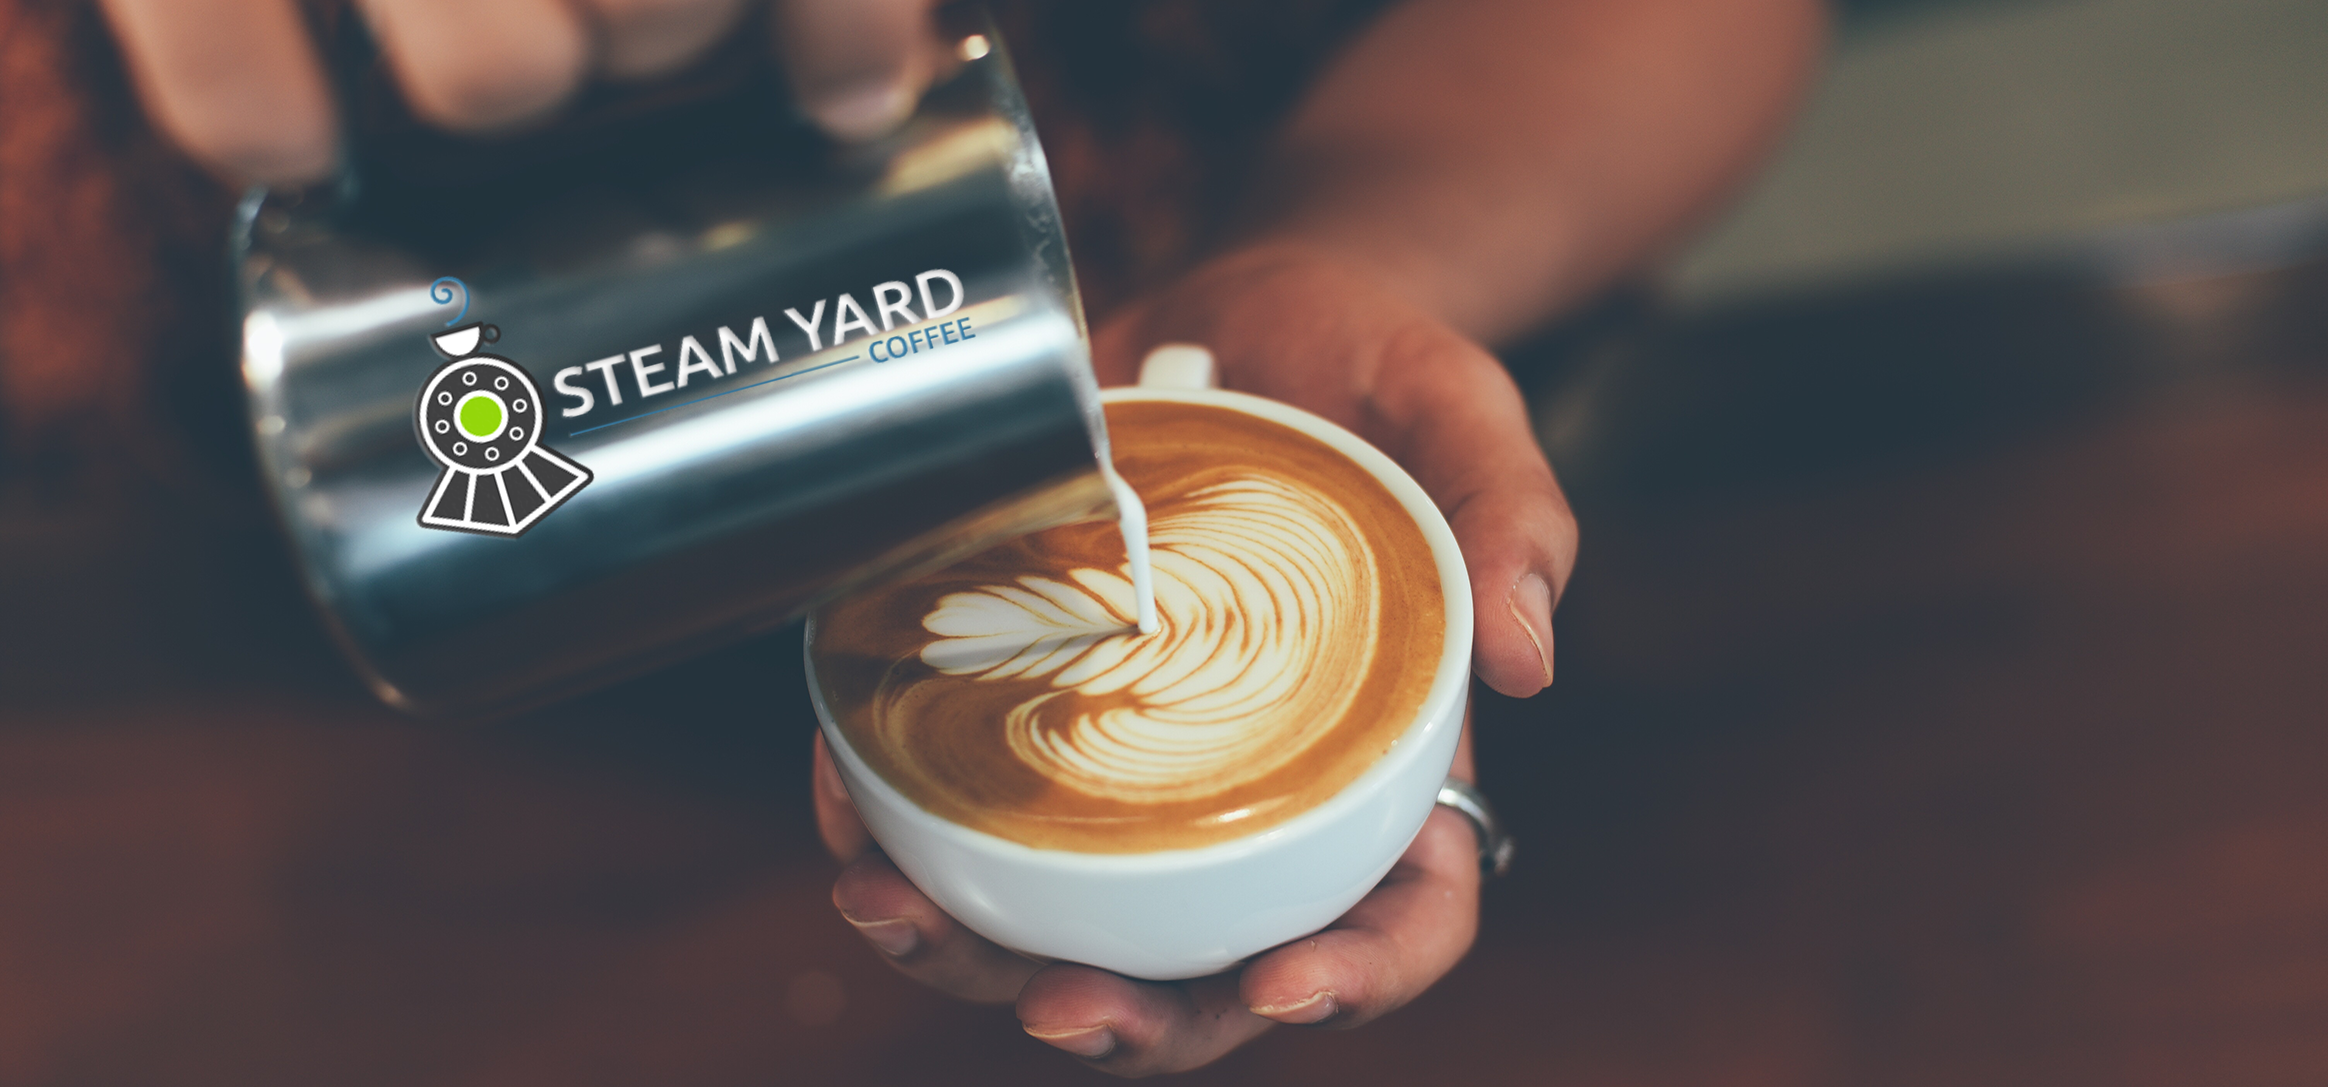 Steam Yard Signature Latte